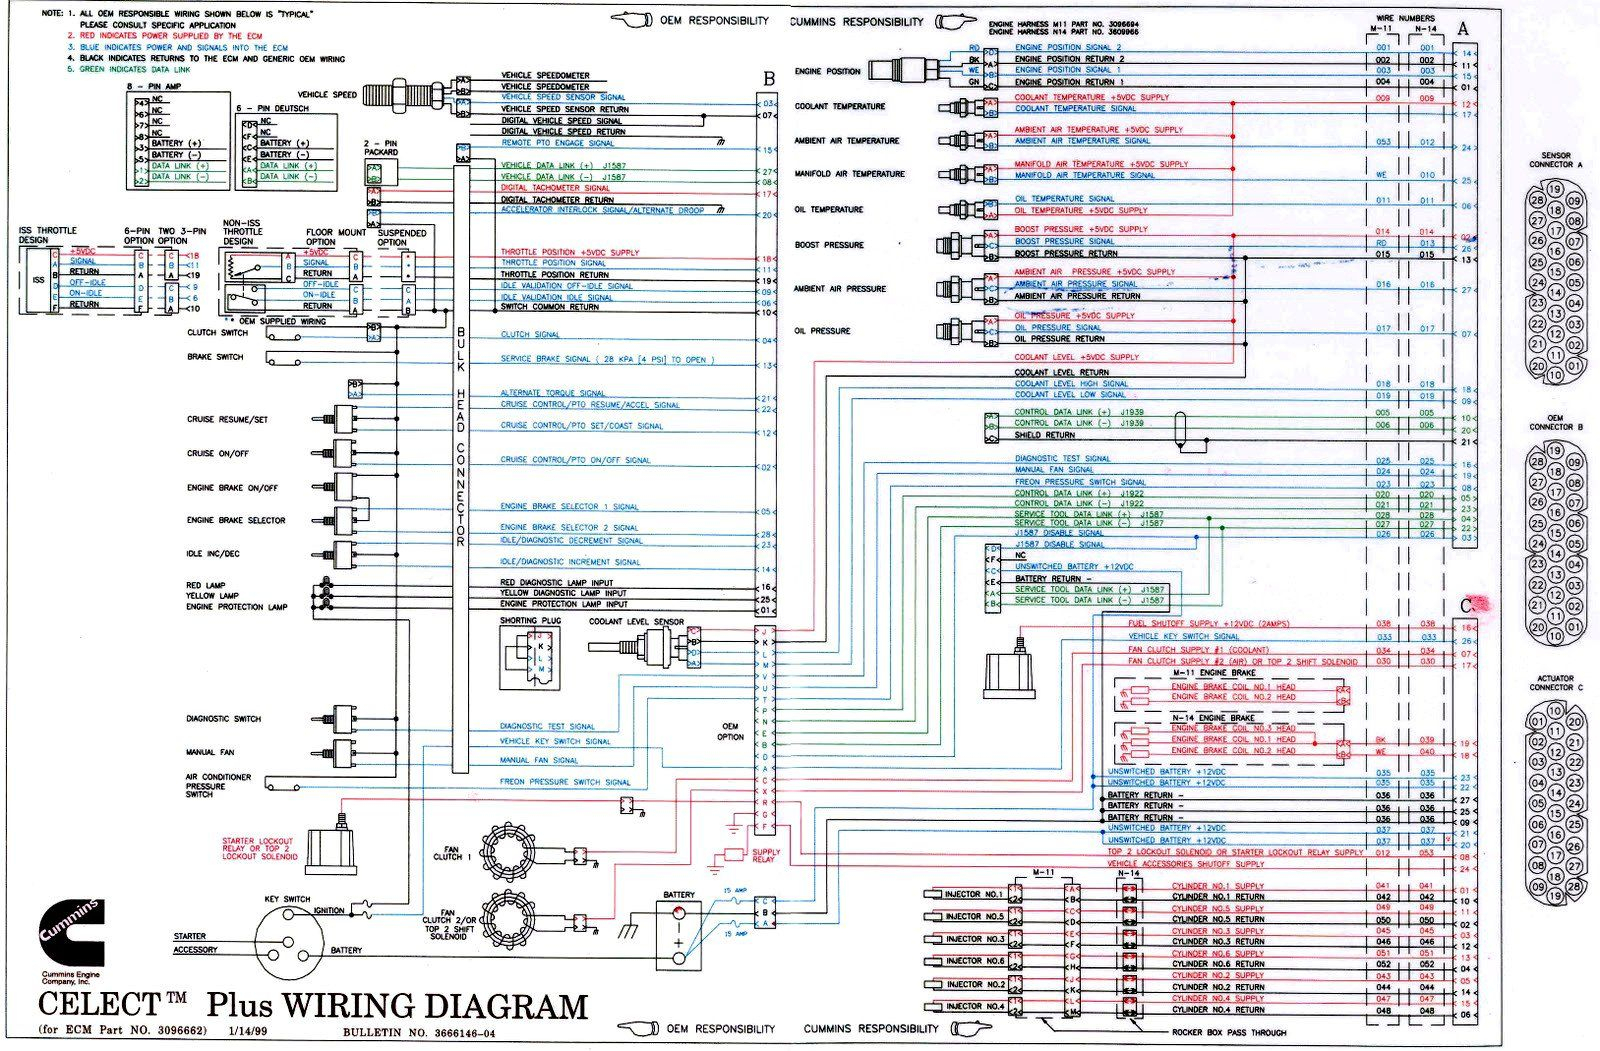 n14 cummins ecm wiring diagram Download-Cummins N14 Celect Plus Wiring Diagram to 100 Ideas Diagrams isx 40 N14 Celect Wiring 5-o